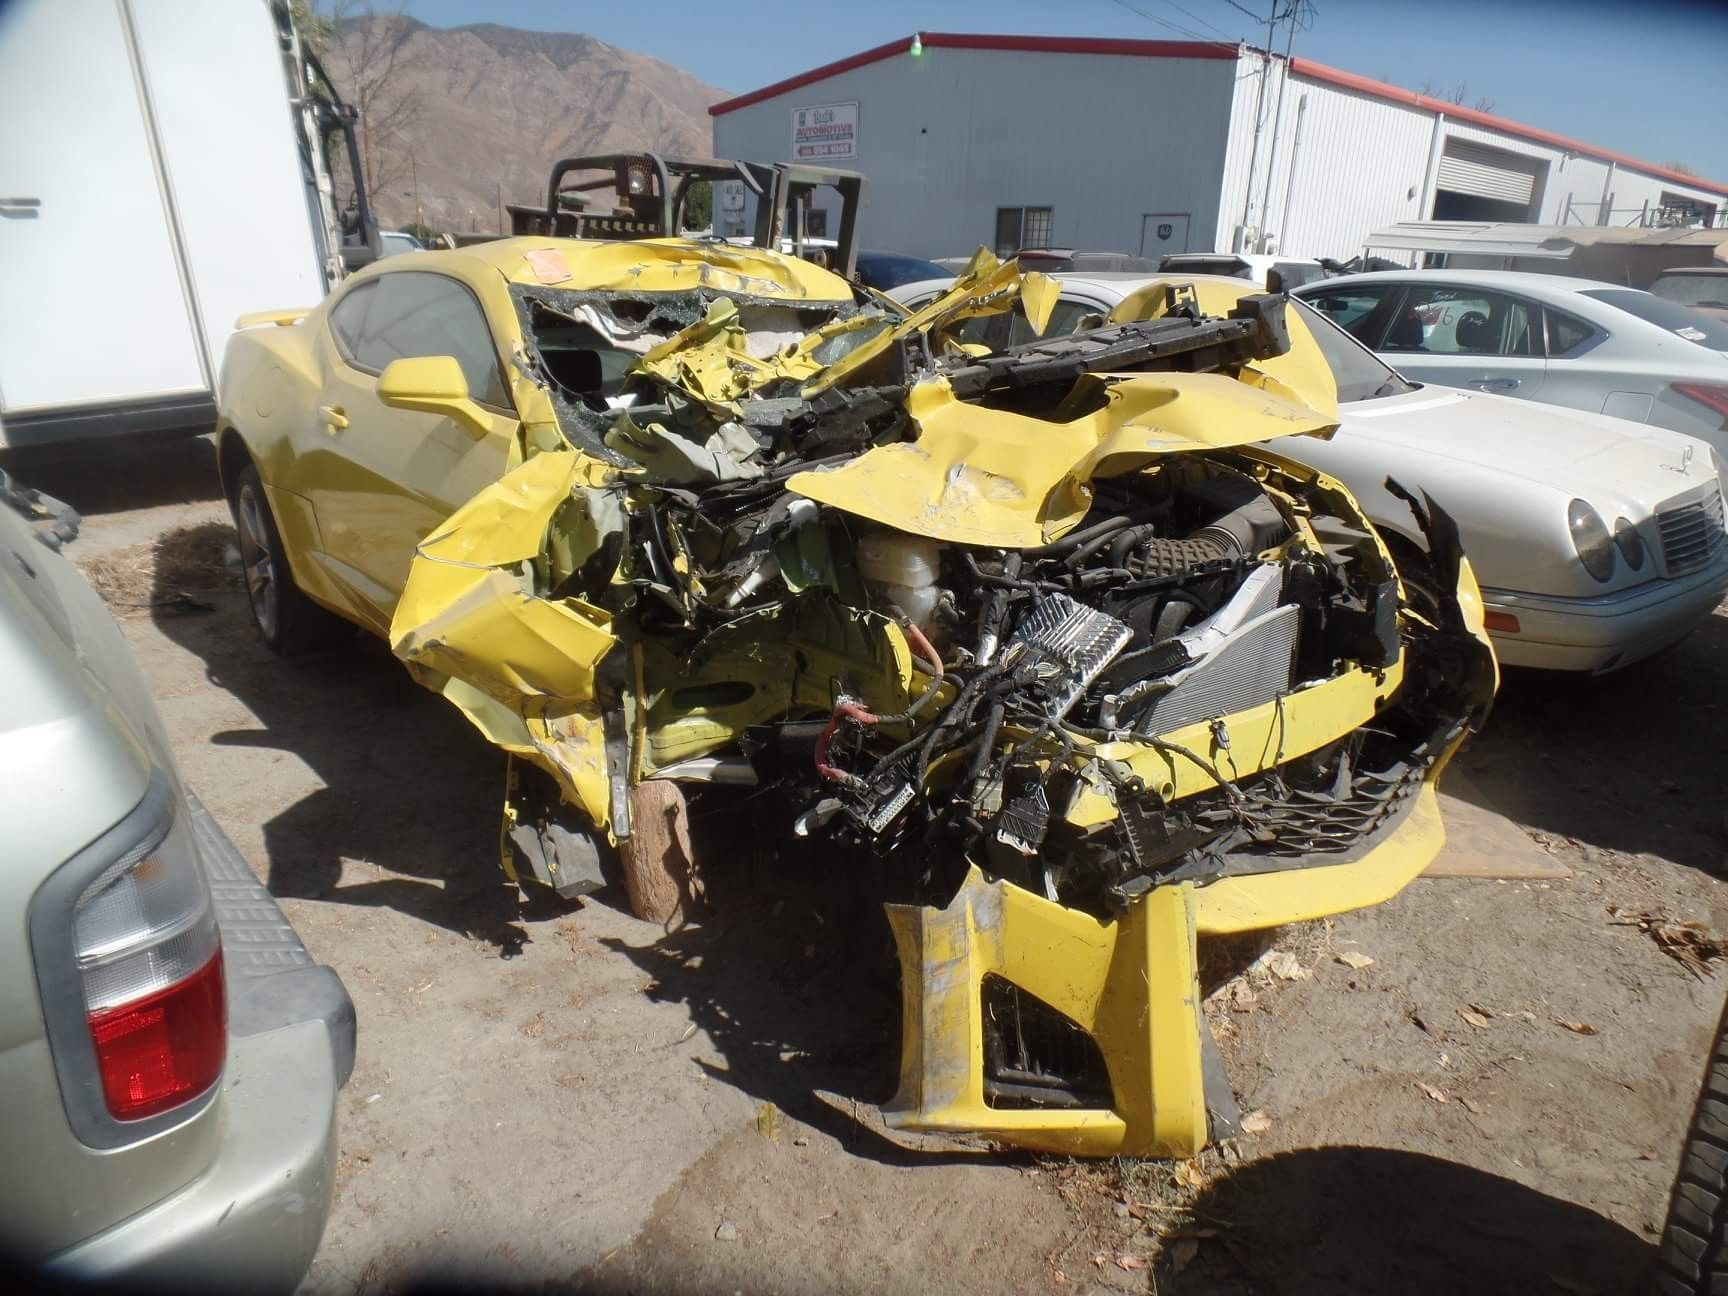 Pin By Anthony On Crashed Cars Car Crash Classic Cars Cars Trucks